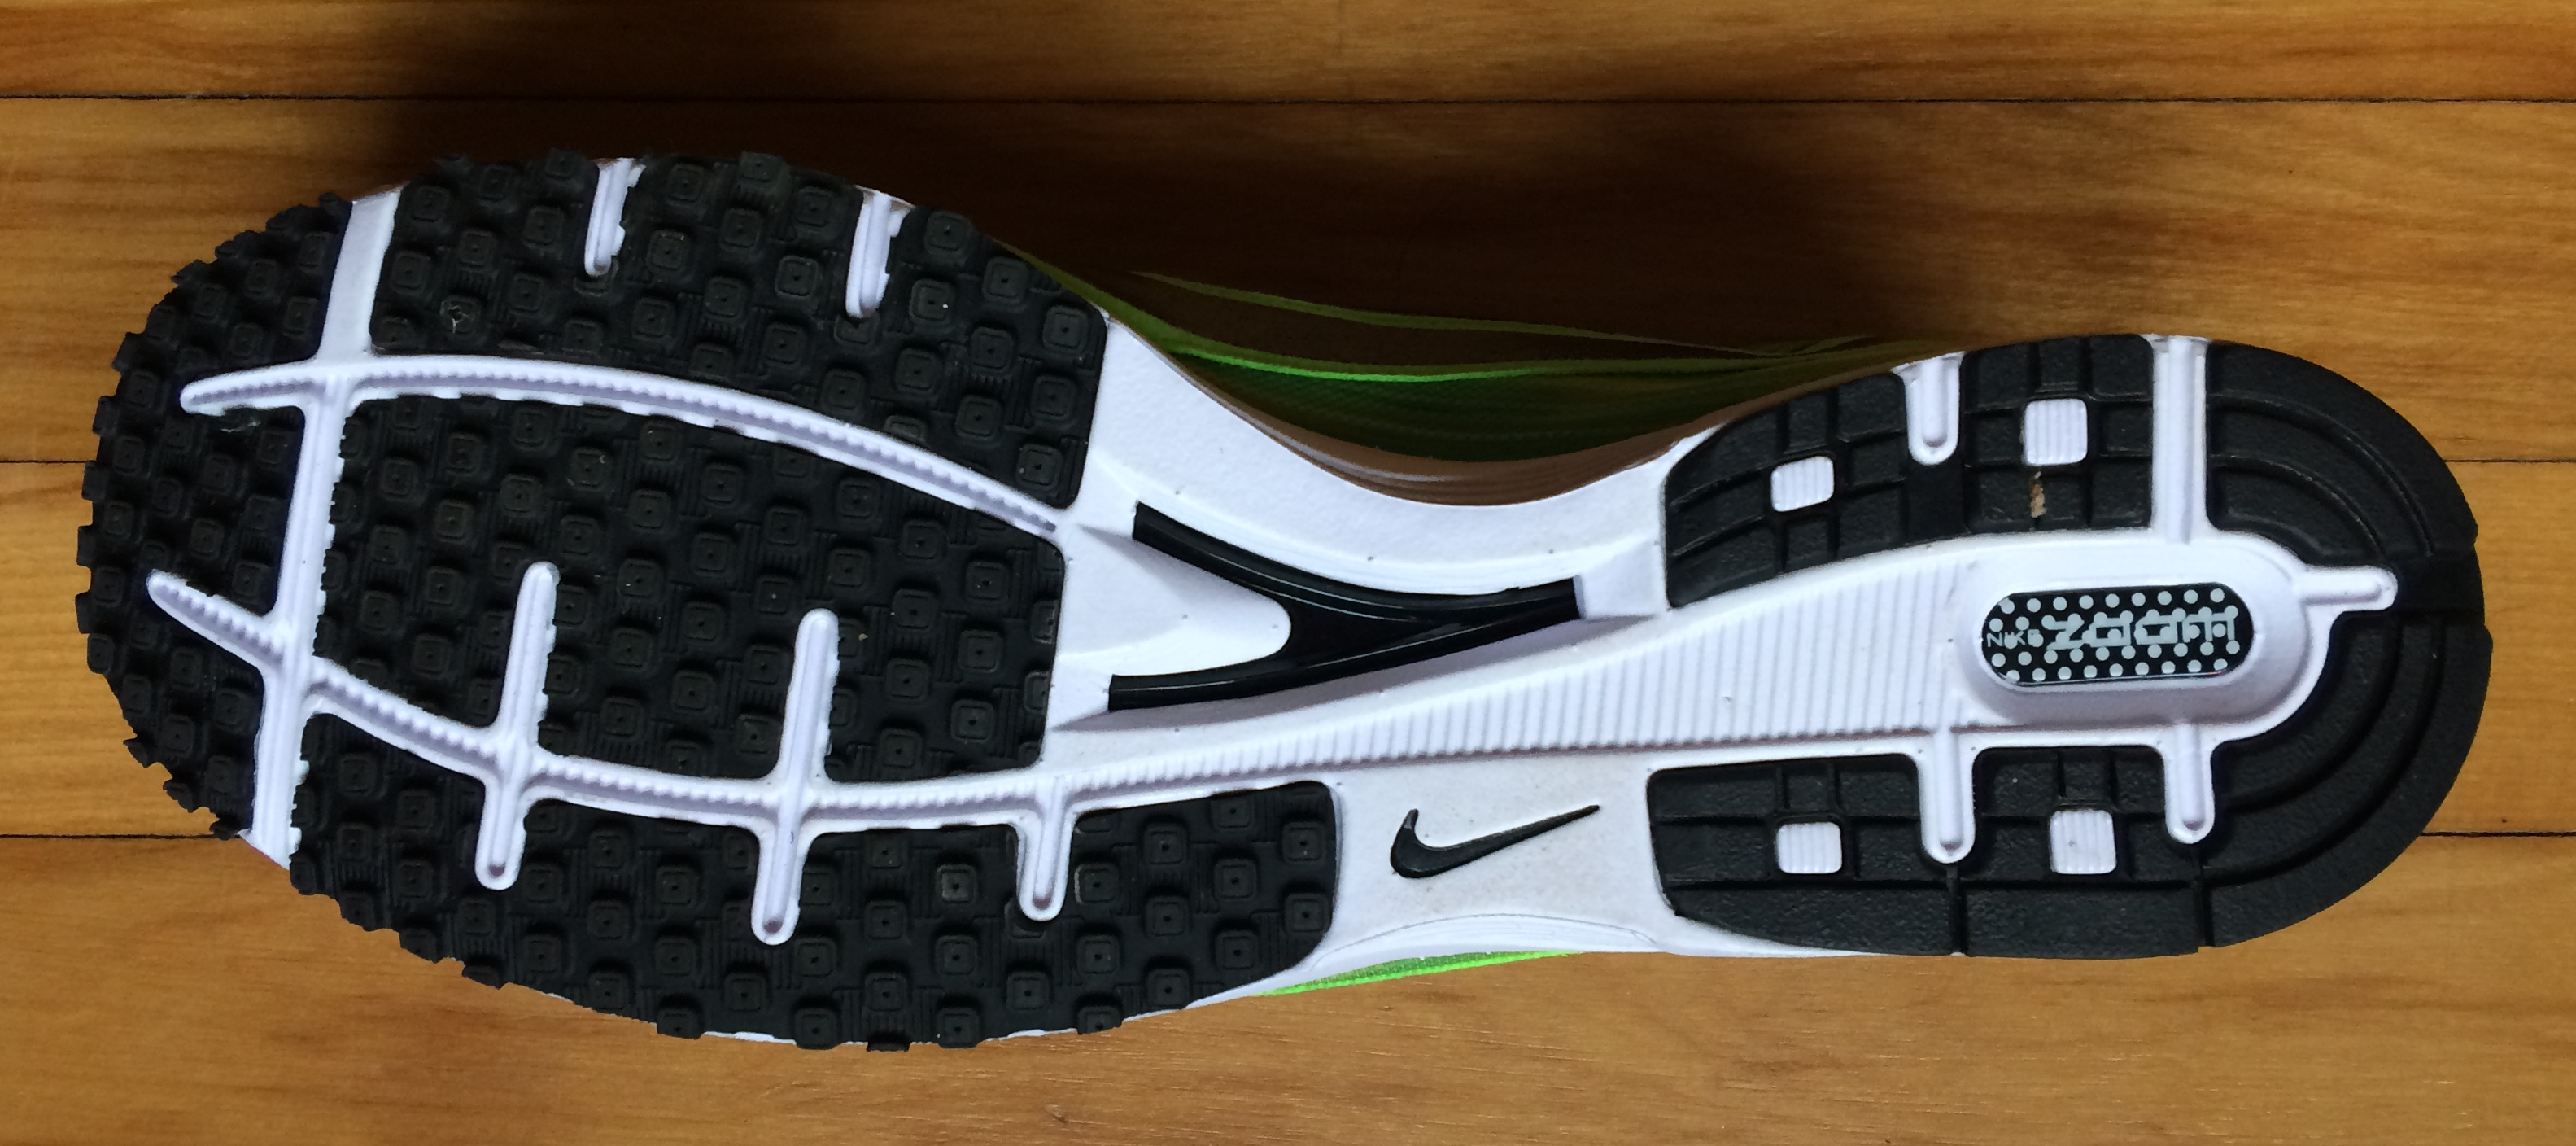 Nike Zoom Streak LT 2 Racing Flat Review